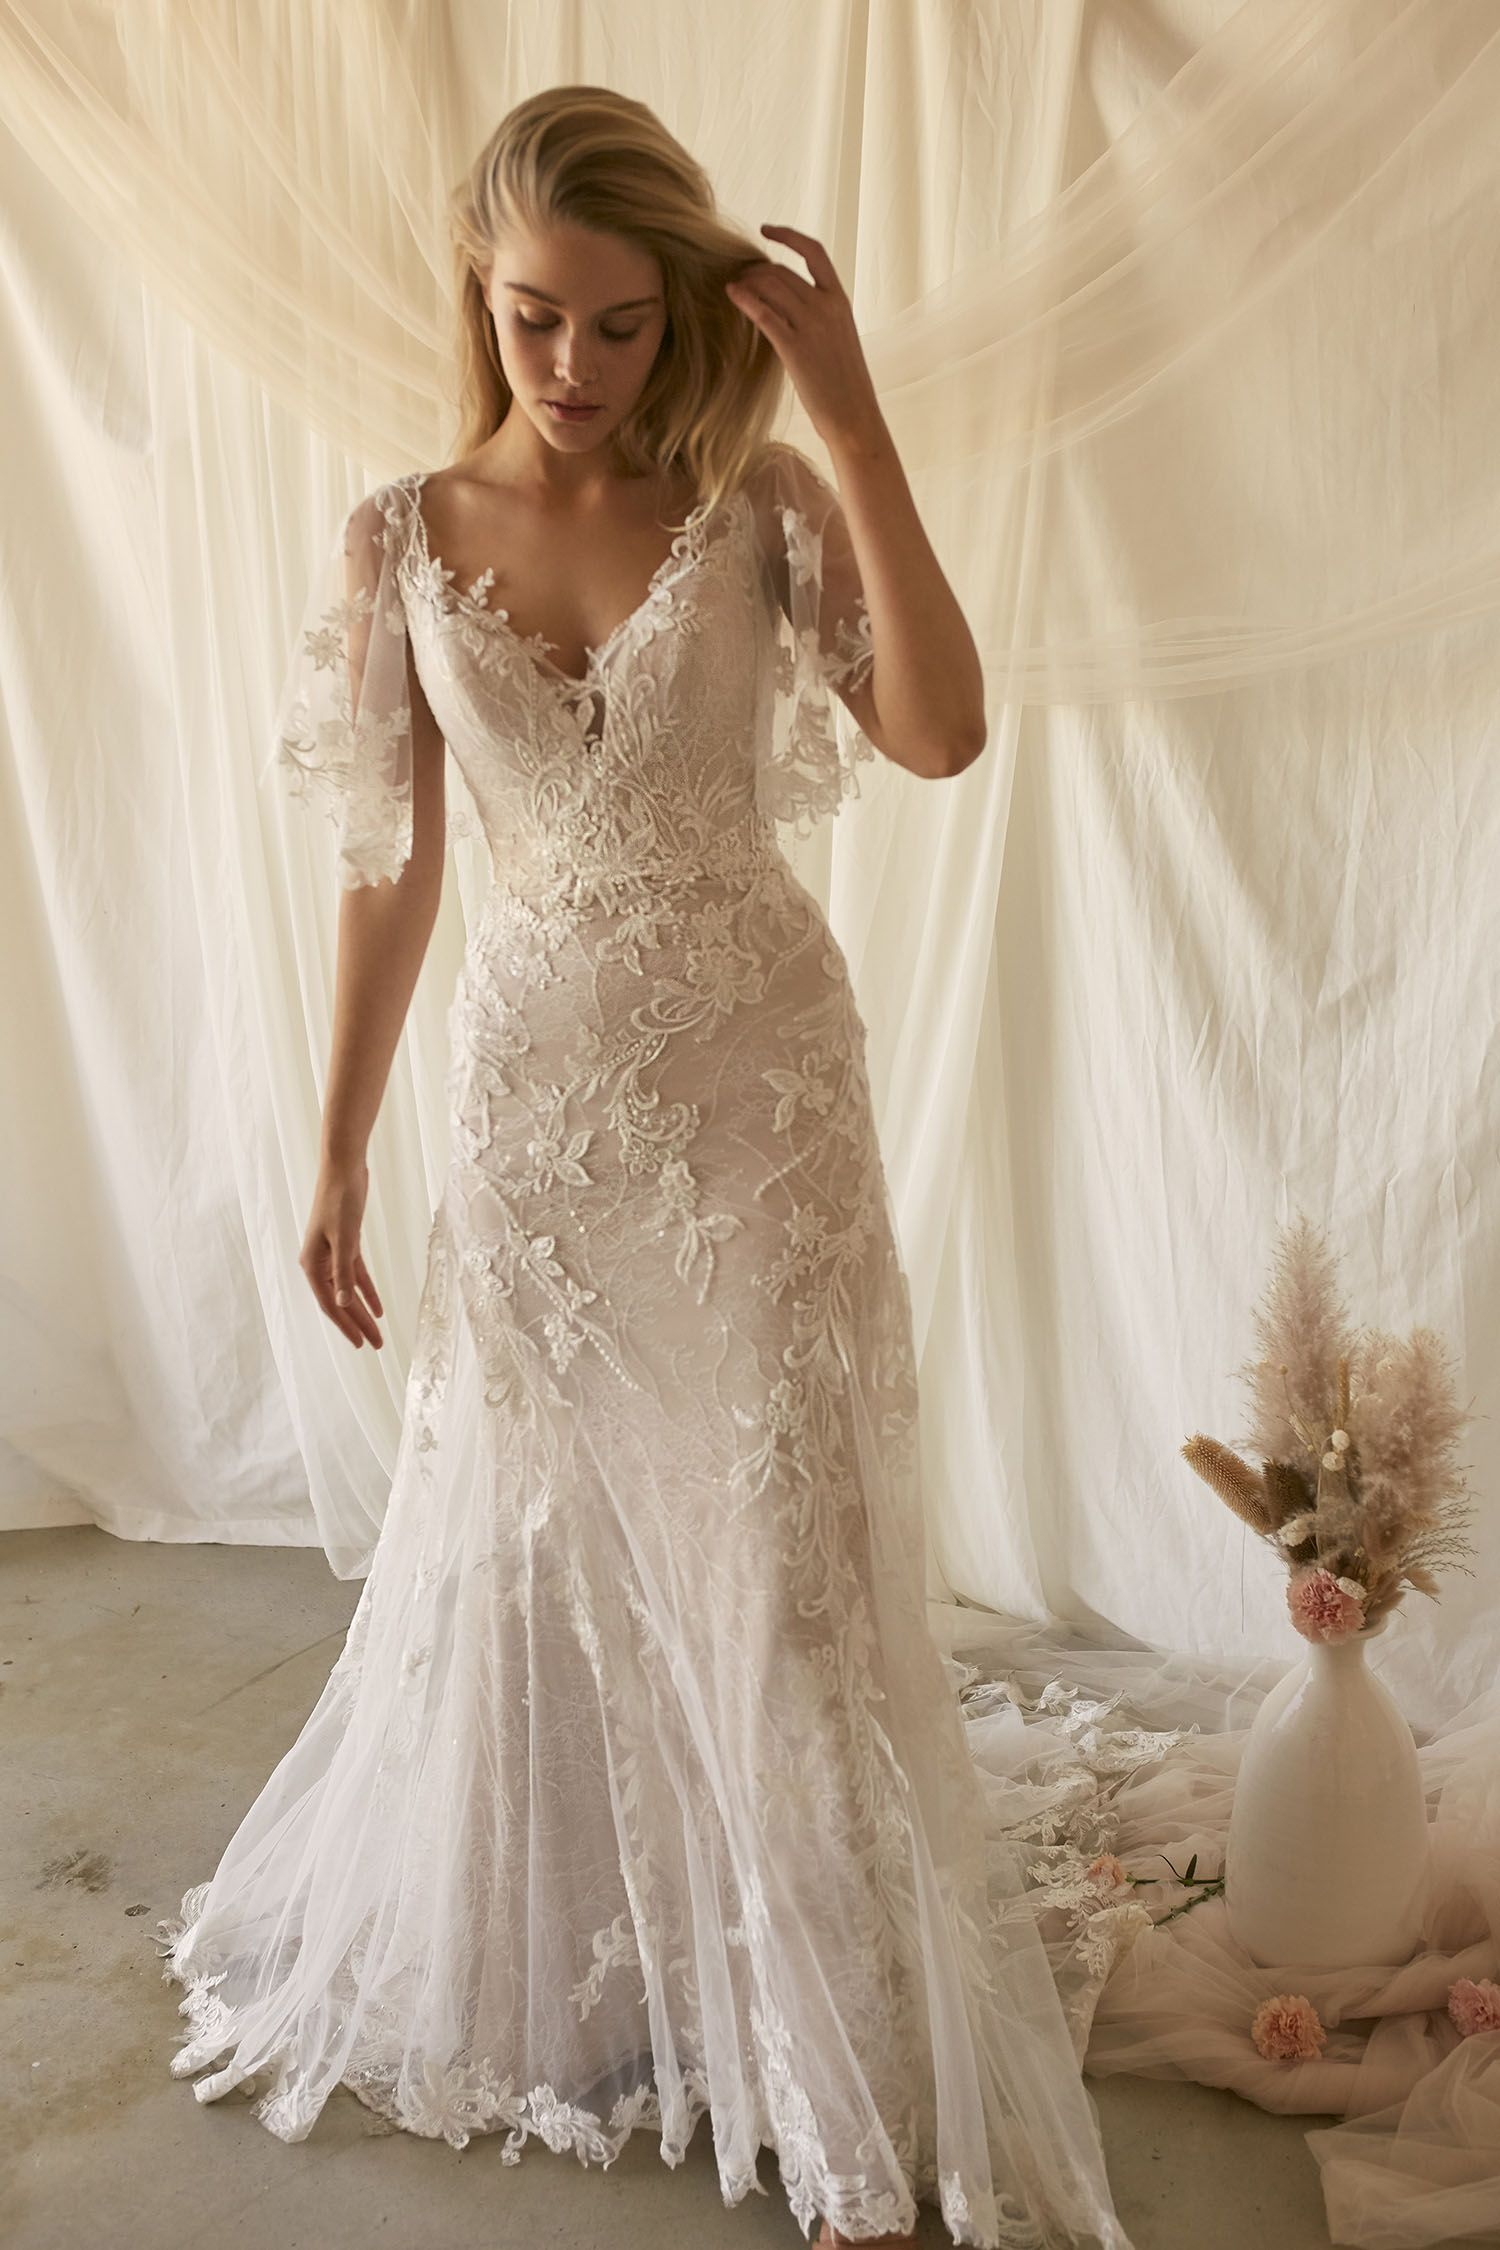 Wedding Dresses Bridal Gowns Mother Of The Groom Dresses For Summer Grizzlehair In 2020 Wedding Dress Sleeves Wedding Dresses Wedding Dresses Lace